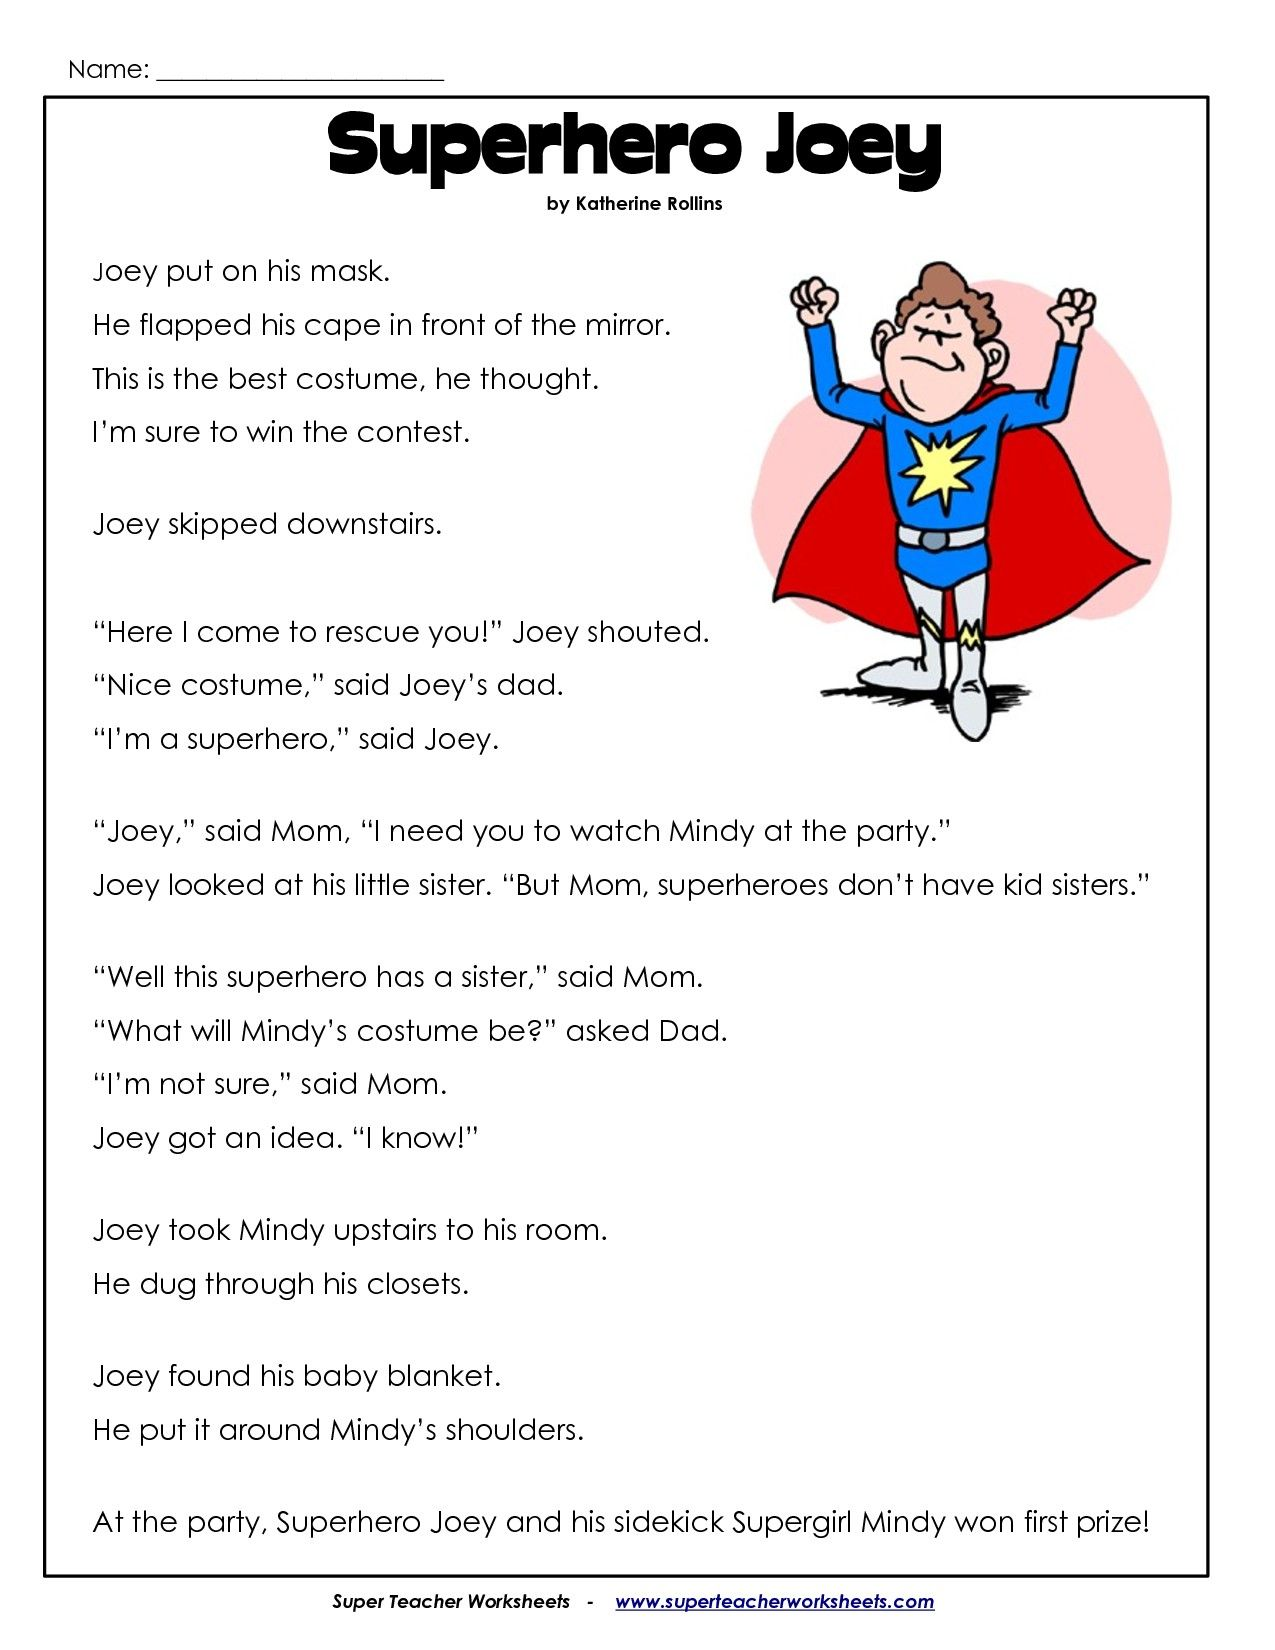 worksheet 4th Grade Reading Comprehension Printable Worksheets the cowboy second grade reading comprehension test use 2nd worksheets pdf